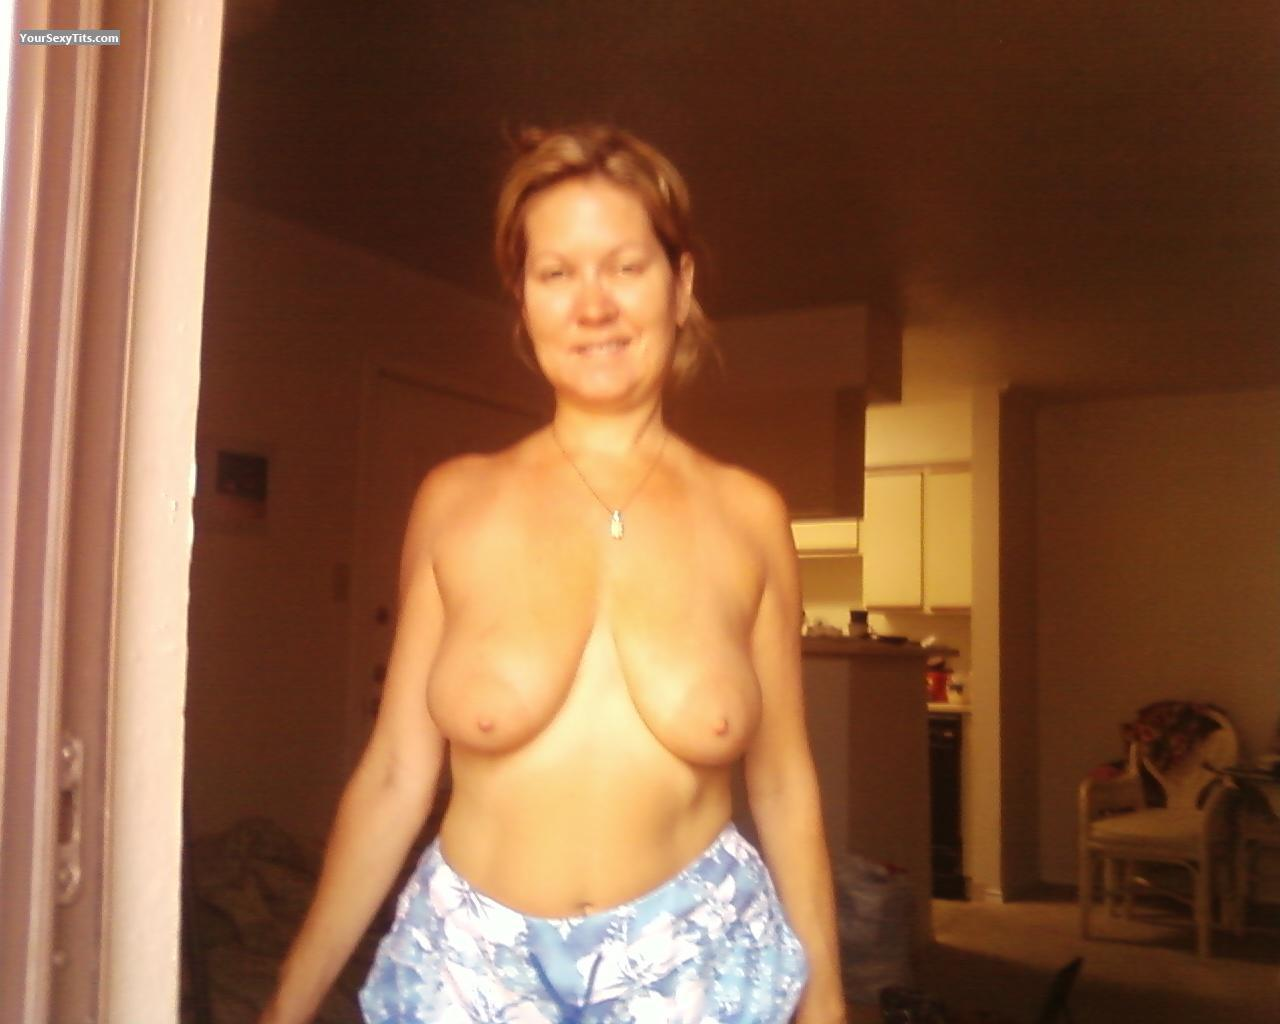 Tit Flash: Medium Tits - T from United States